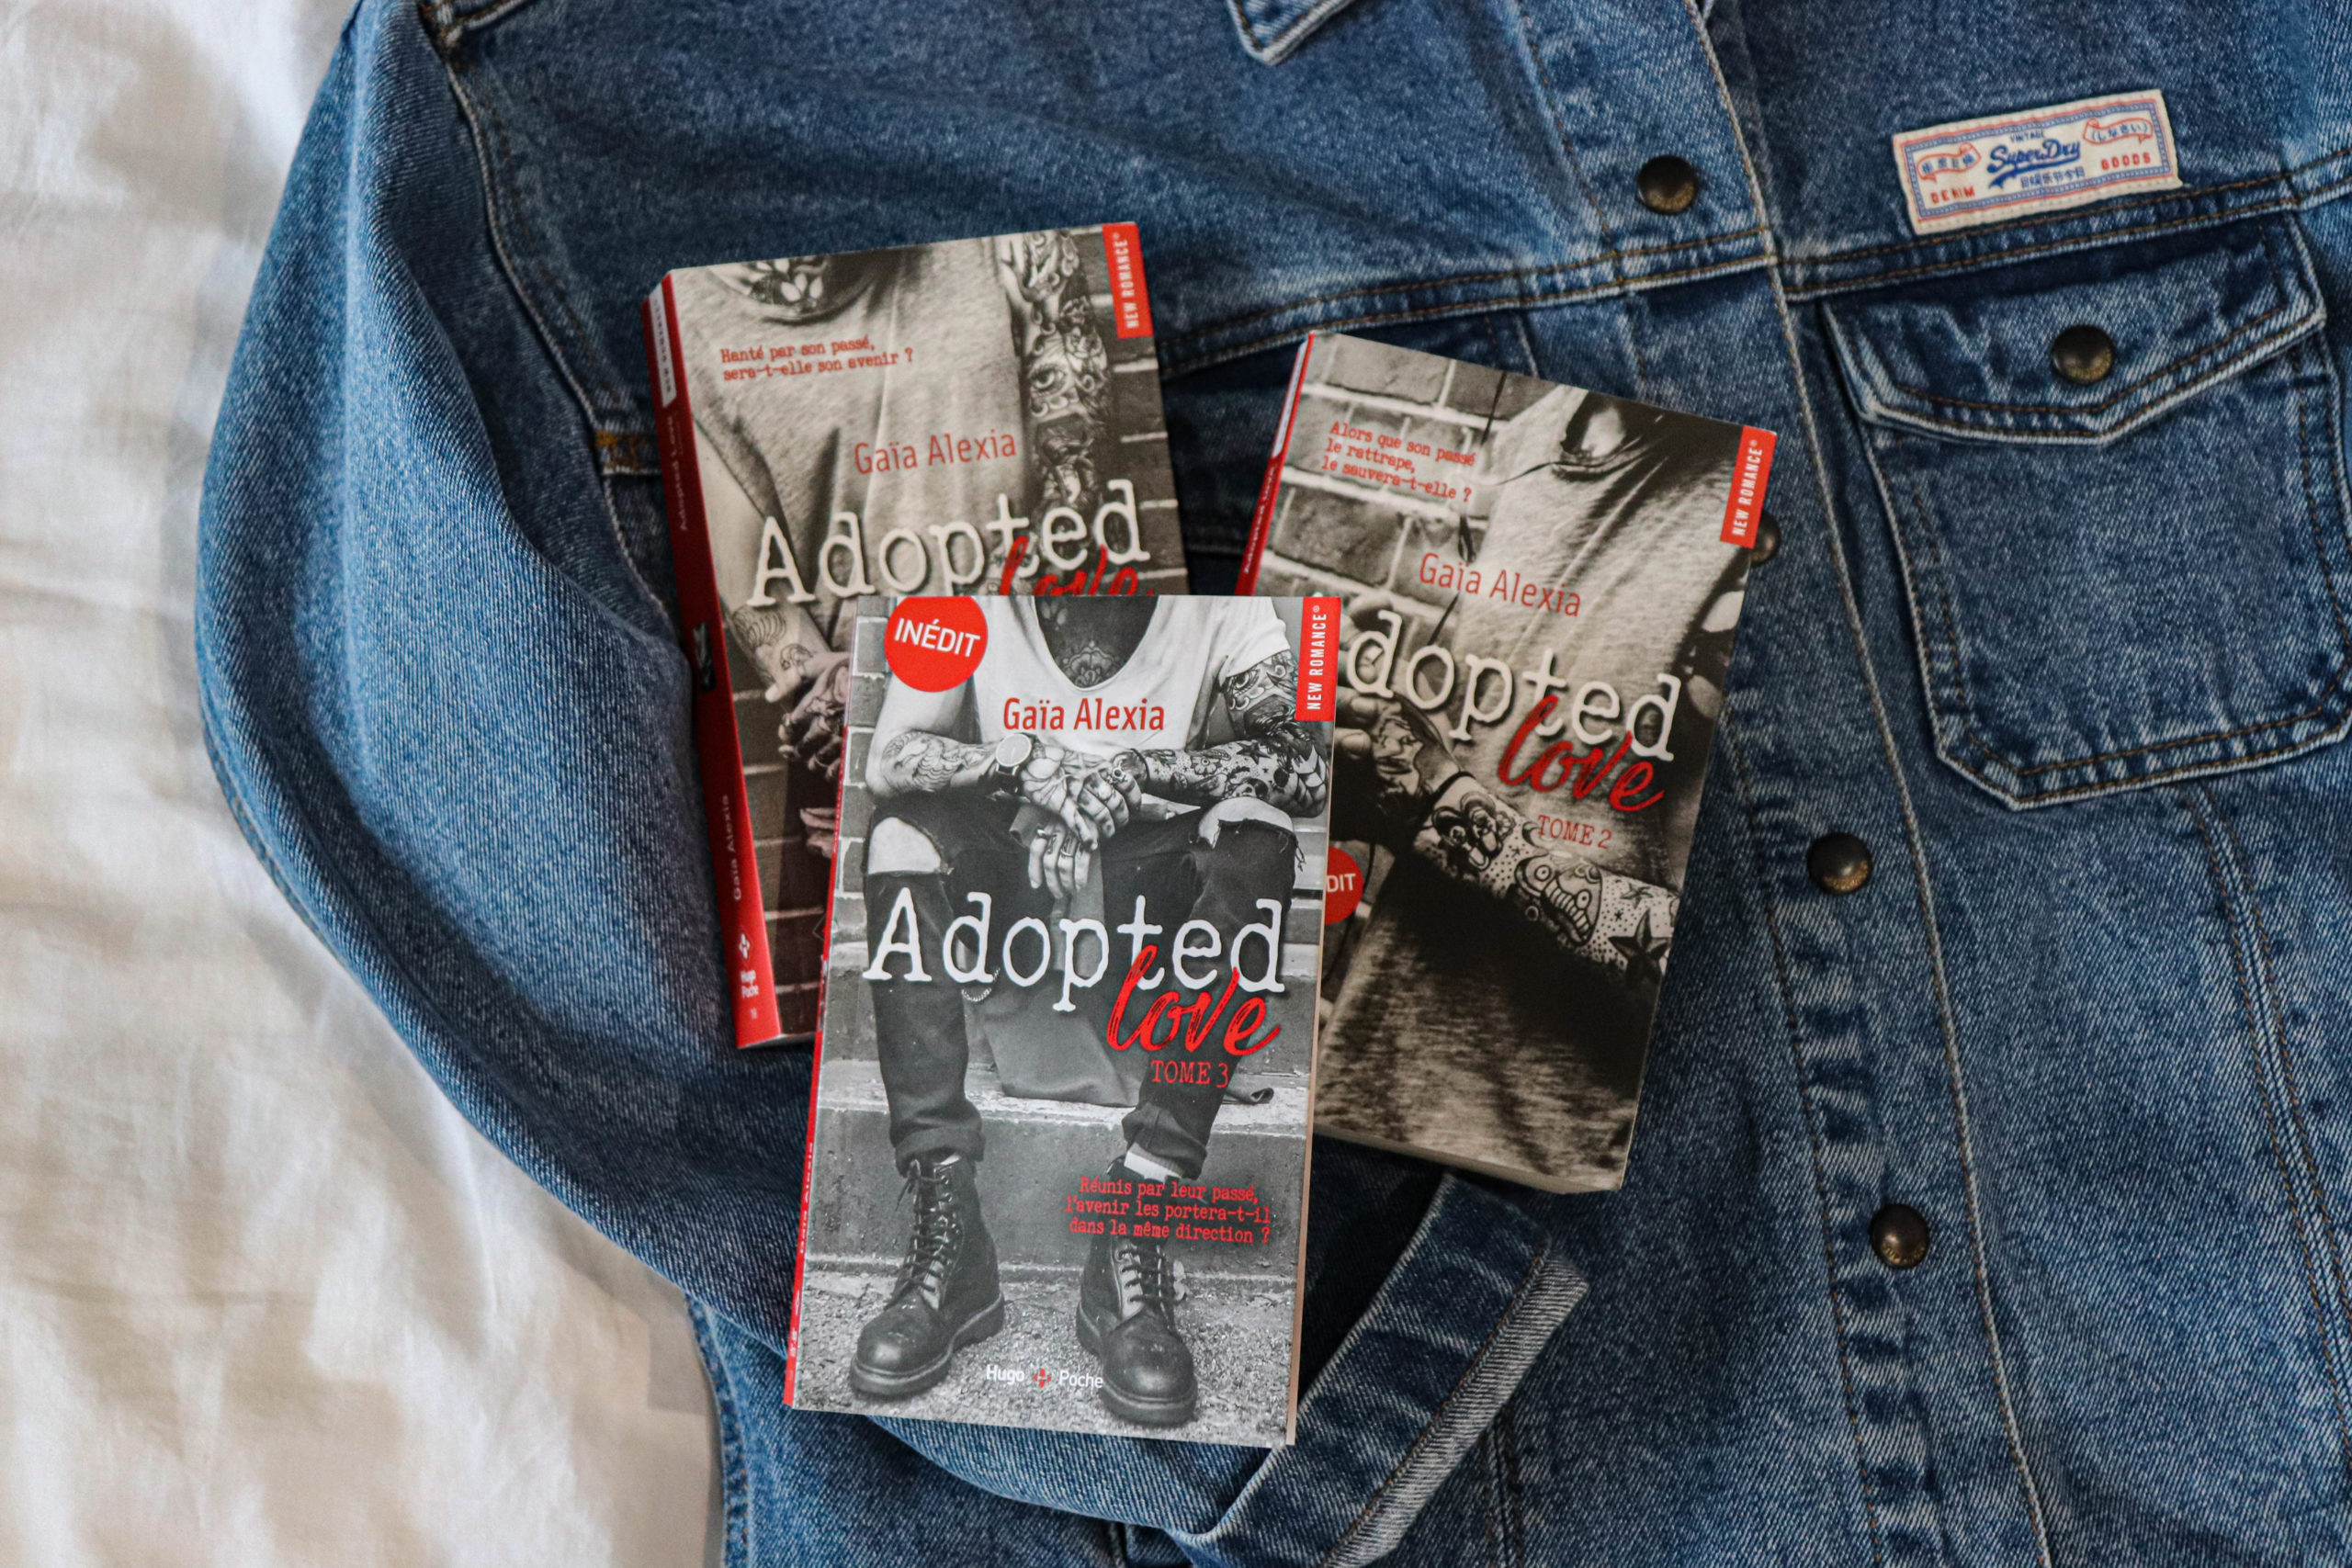 Adopted love #3 – Gaïa Alexia